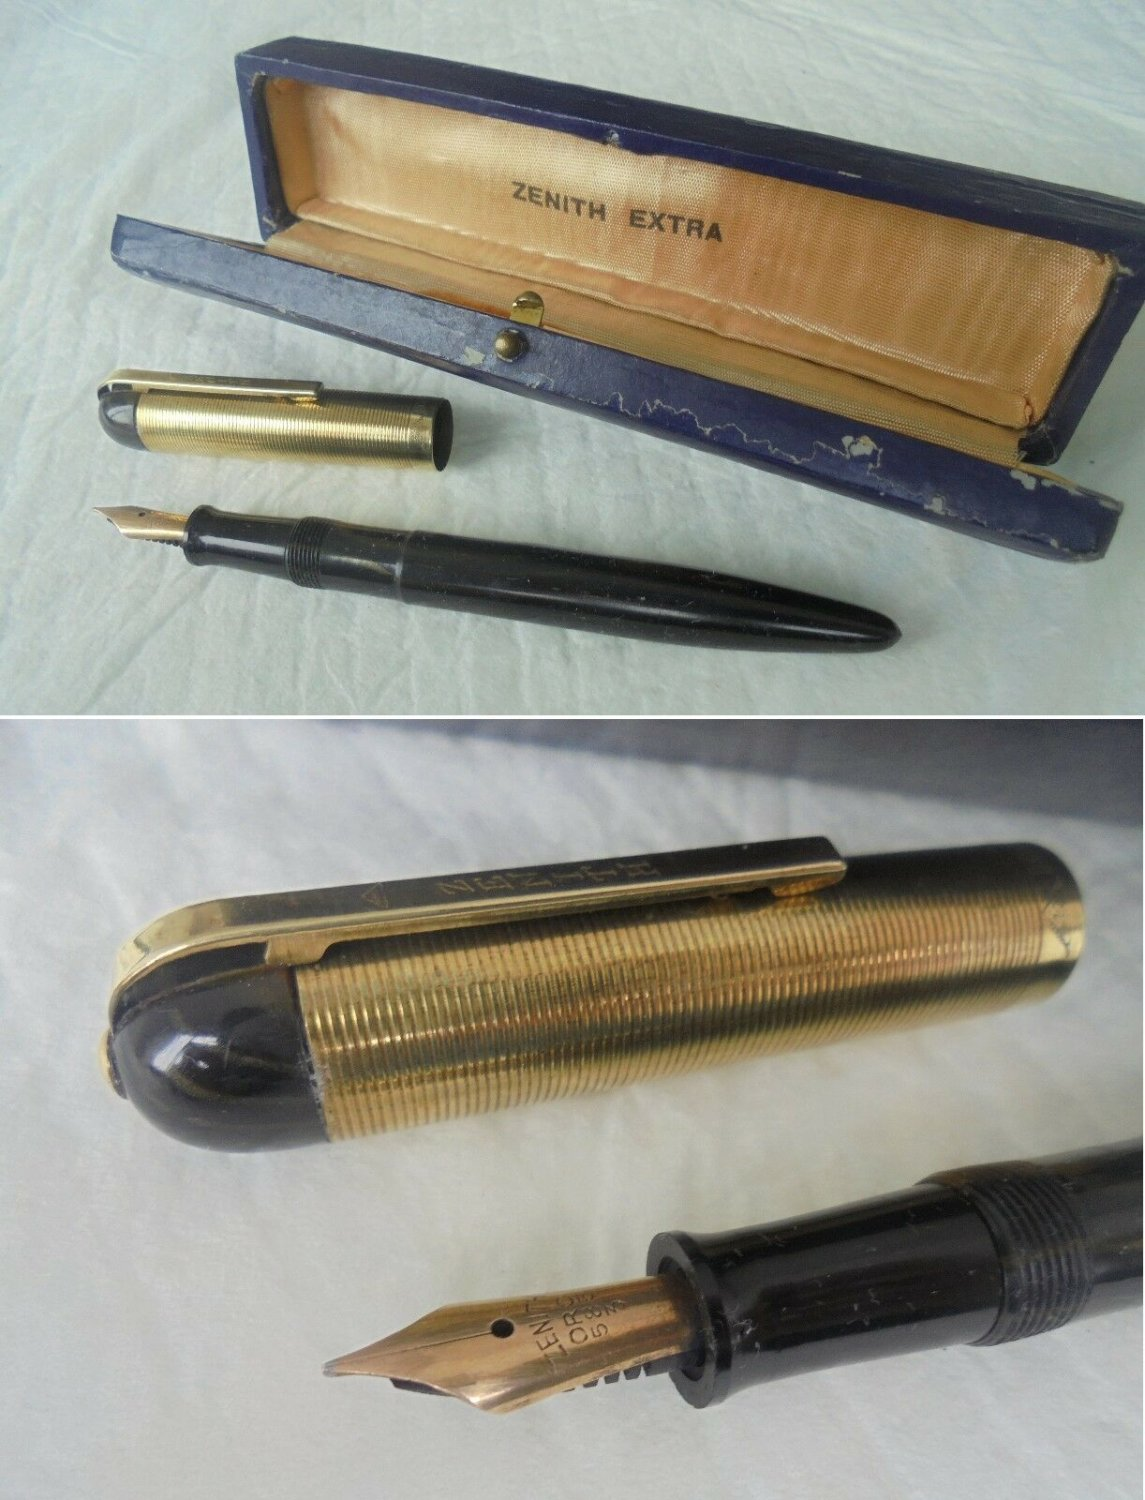 ZENITH EXTRA Lever filler Fountain pen Gold 18K in gift box Original from 1950s